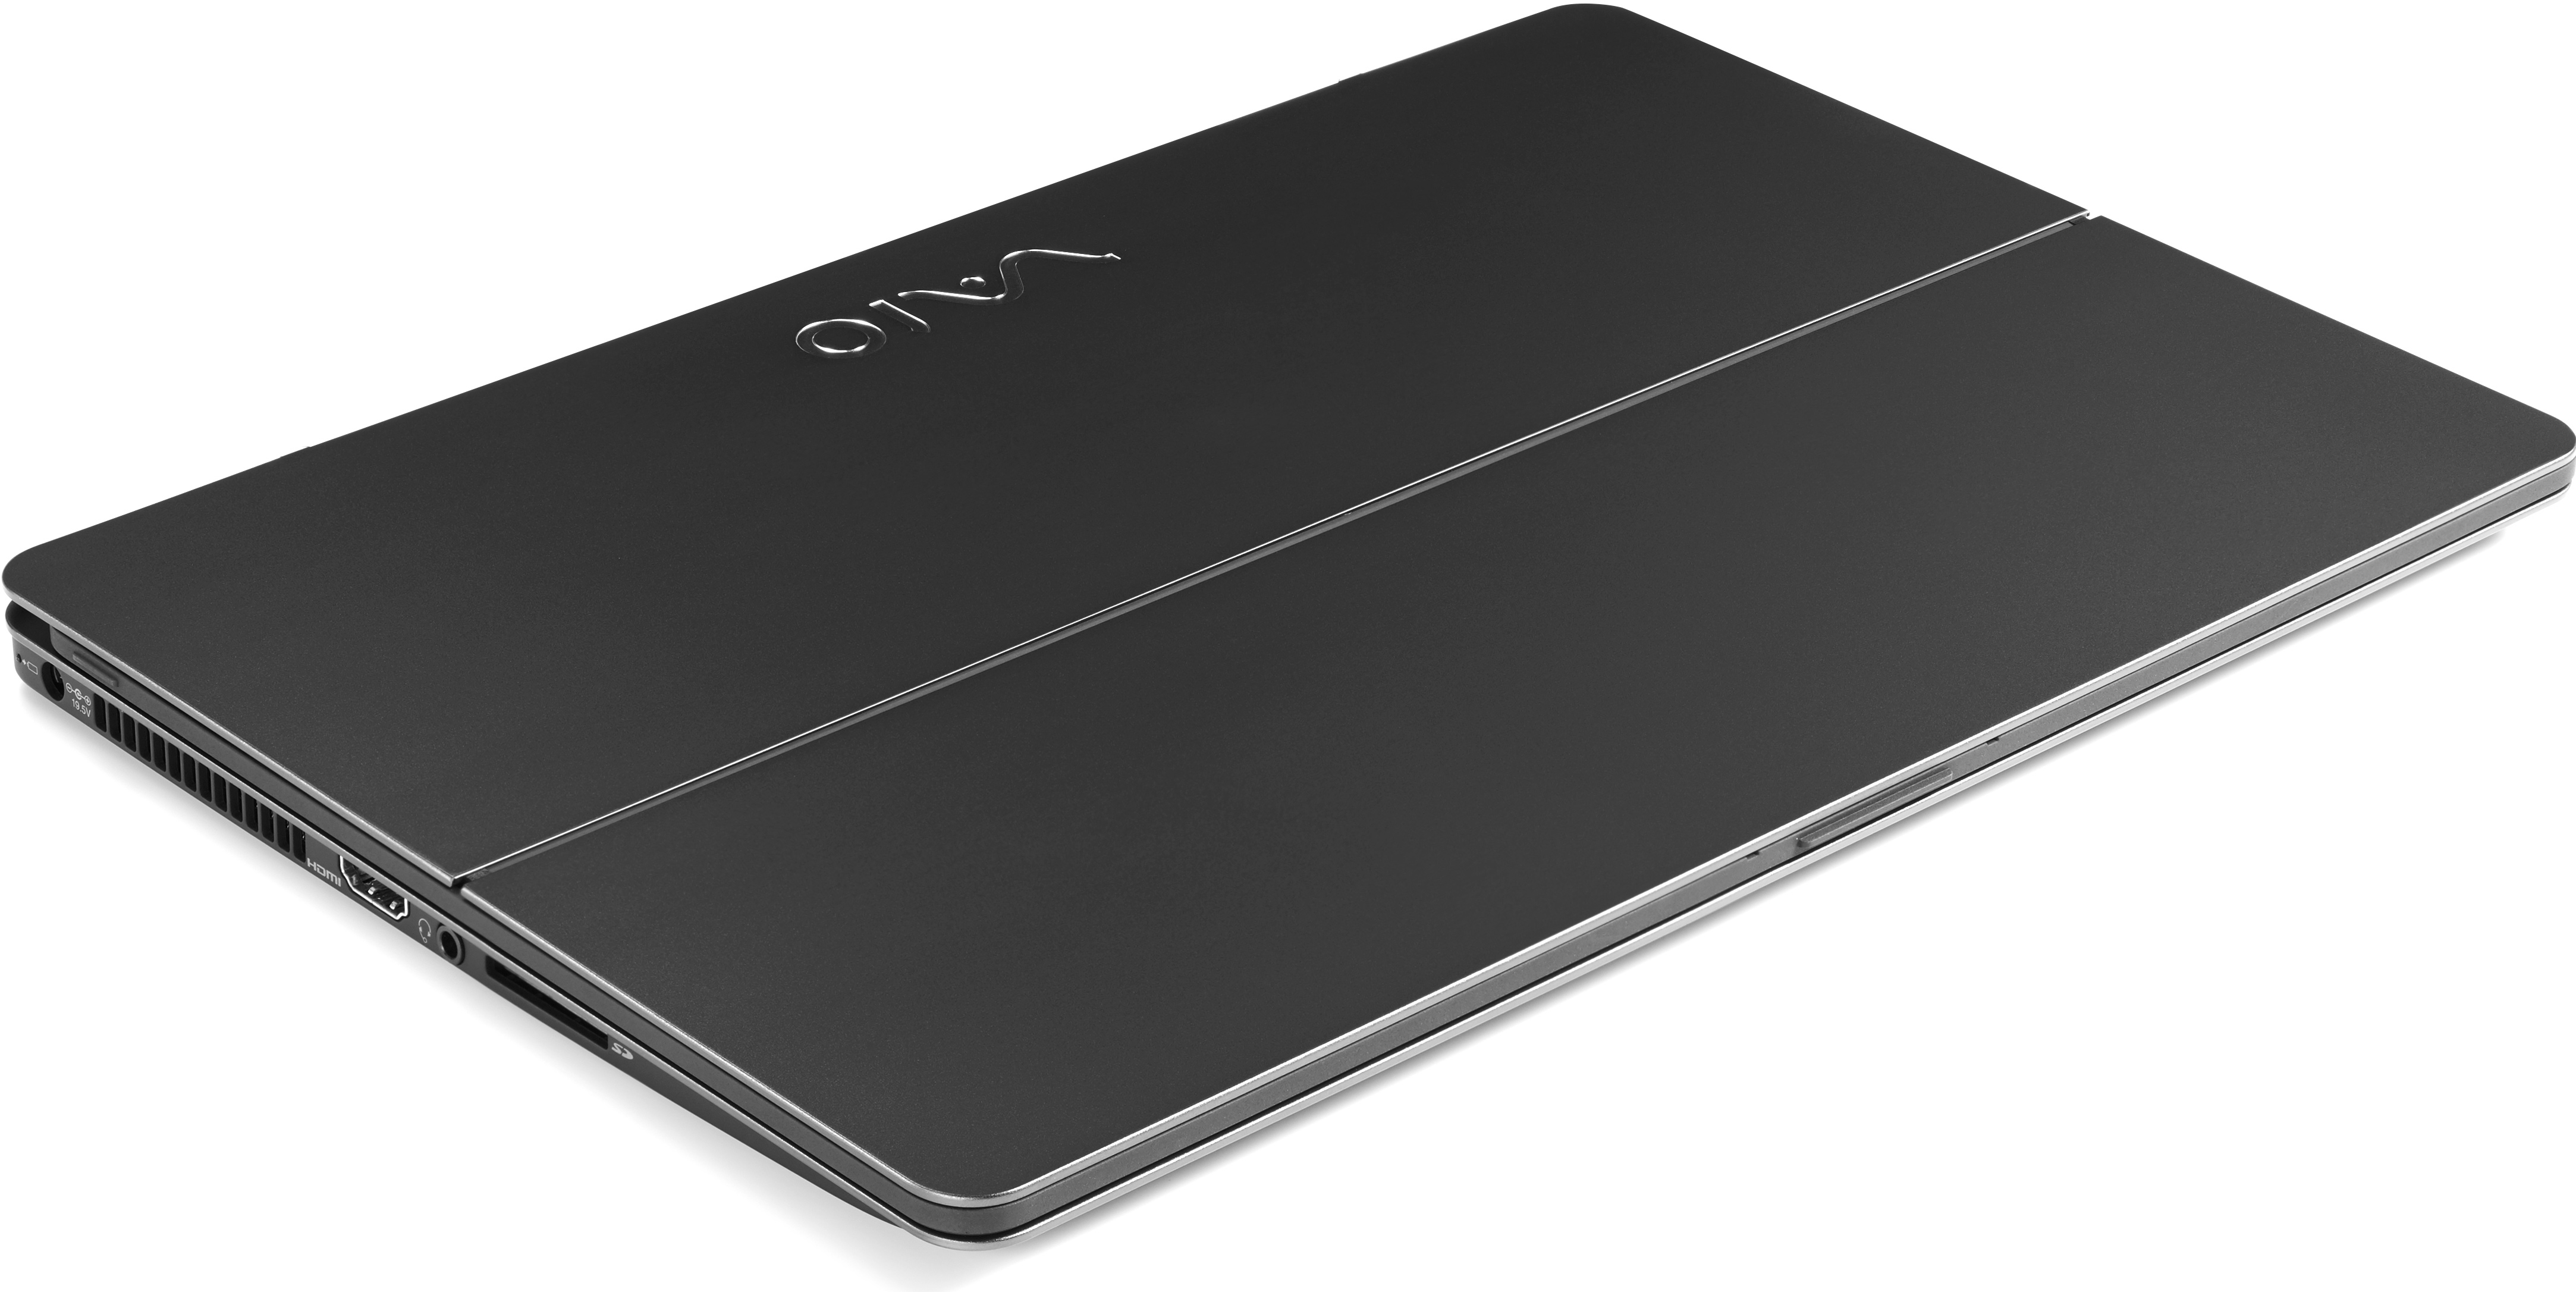 vaio to start selling laptops in the u s this spring